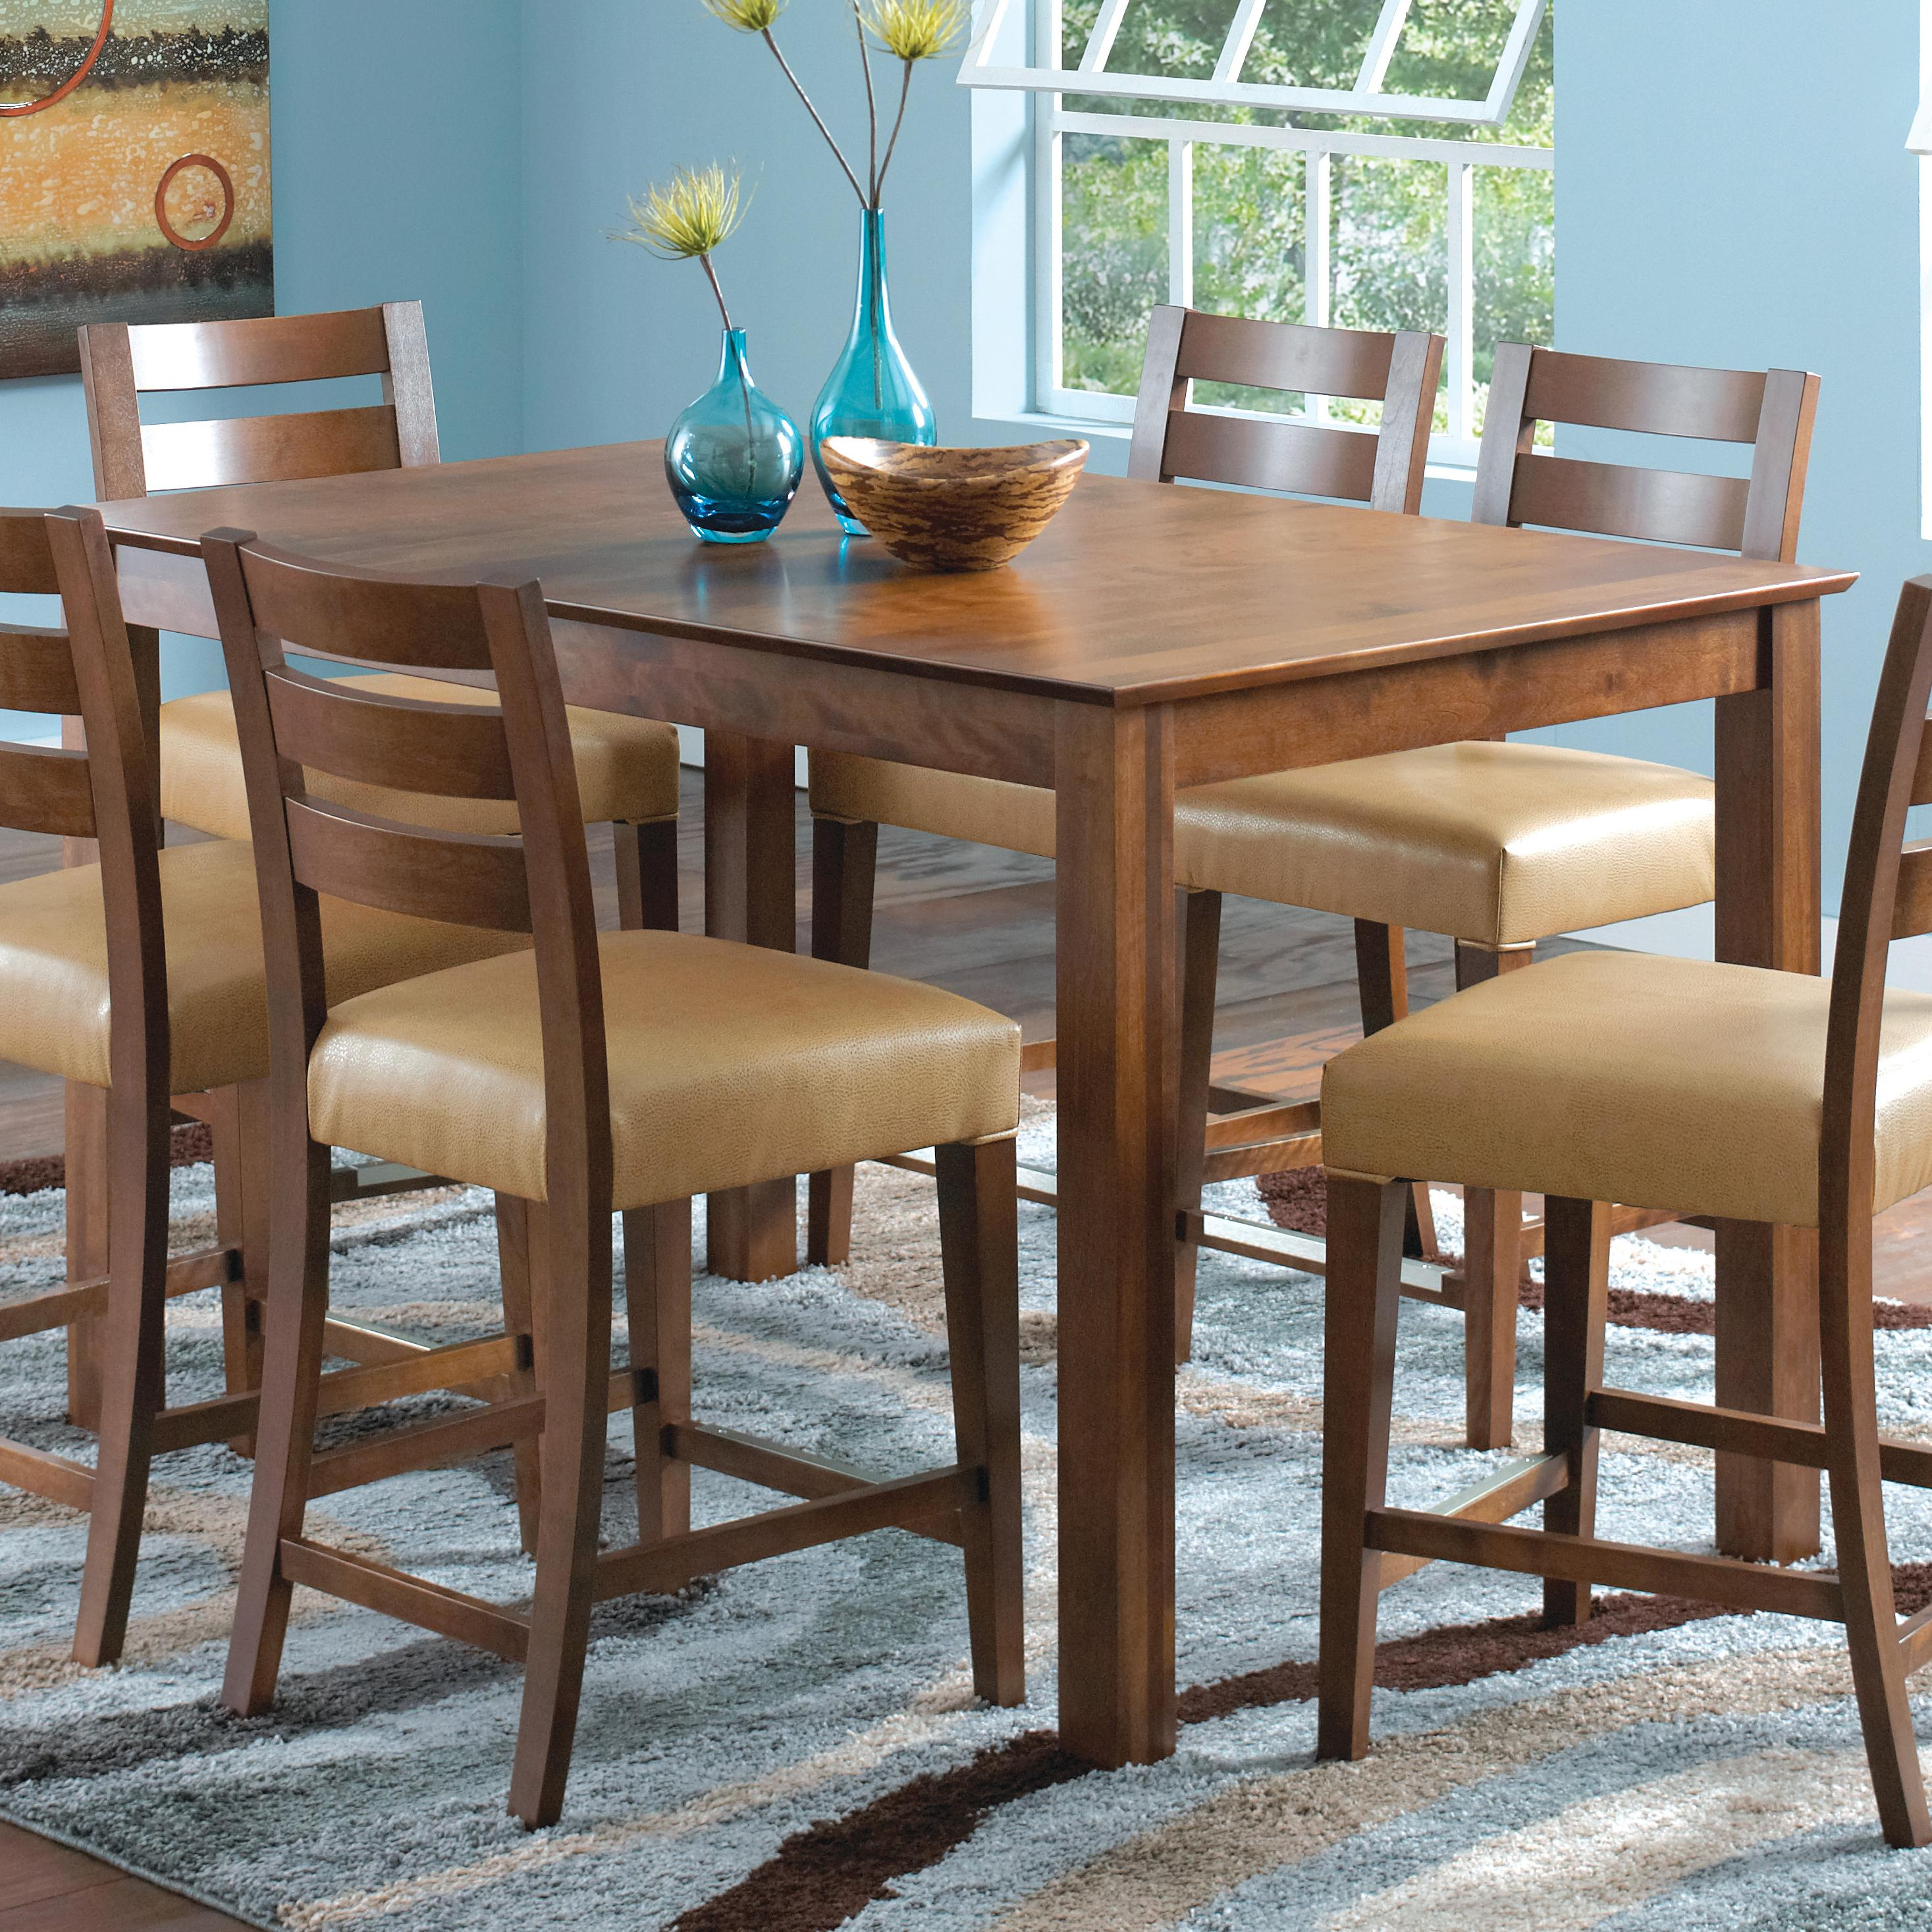 High Dining Room Table: High Dining Customizable Counter